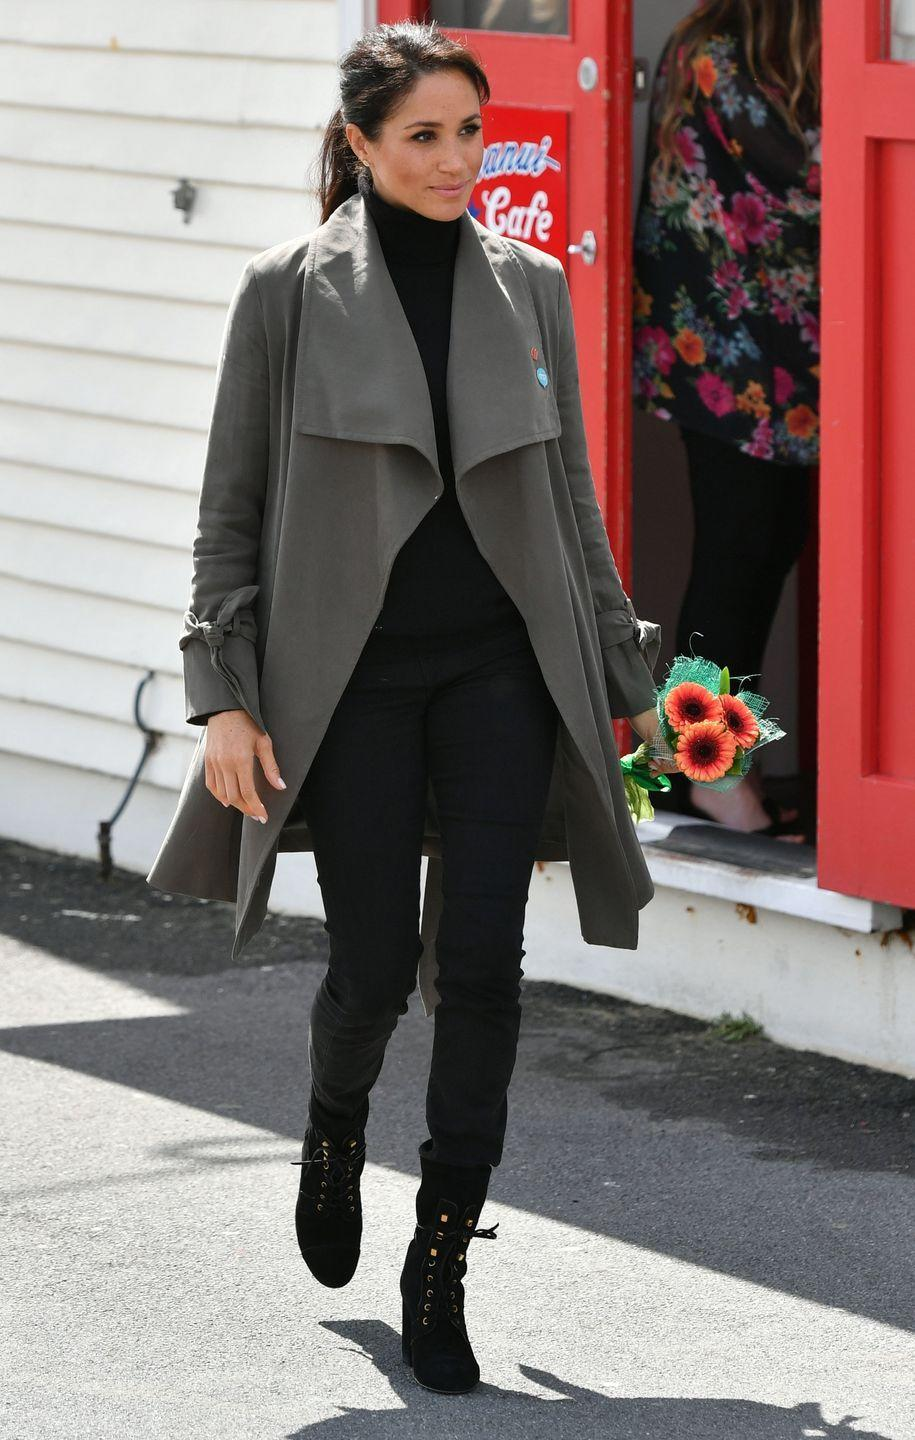 "<p>Harry and Meghan met with a young New Zealanders to discuss mental health while in Wellington. For the daytime outing, the Duchess wore Club Monaco's Ellayne Trench over a sweater by Jac + Jack with <a href=""https://outlanddenim.ca/products/harriet-in-black-1?variant=12431424815201"" rel=""nofollow noopener"" target=""_blank"" data-ylk=""slk:Outland Denim's Harriet jeans."" class=""link rapid-noclick-resp"">Outland Denim's Harriet jeans.</a> Meghan also wore lace-up boots by Stuart Weitzman</p><p><a class=""link rapid-noclick-resp"" href=""https://go.redirectingat.com?id=74968X1596630&url=https%3A%2F%2Fshop.nordstrom.com%2Fs%2Fstuart-weitzman-veruka-lace-up-boot-women%2F4900880&sref=https%3A%2F%2Fwww.townandcountrymag.com%2Fstyle%2Ffashion-trends%2Fg3272%2Fmeghan-markle-preppy-style%2F"" rel=""nofollow noopener"" target=""_blank"" data-ylk=""slk:SHOP NOW"">SHOP NOW </a><em>Veruka Lace-Up Boot by Stuart Weitzman, $698</em></p>"